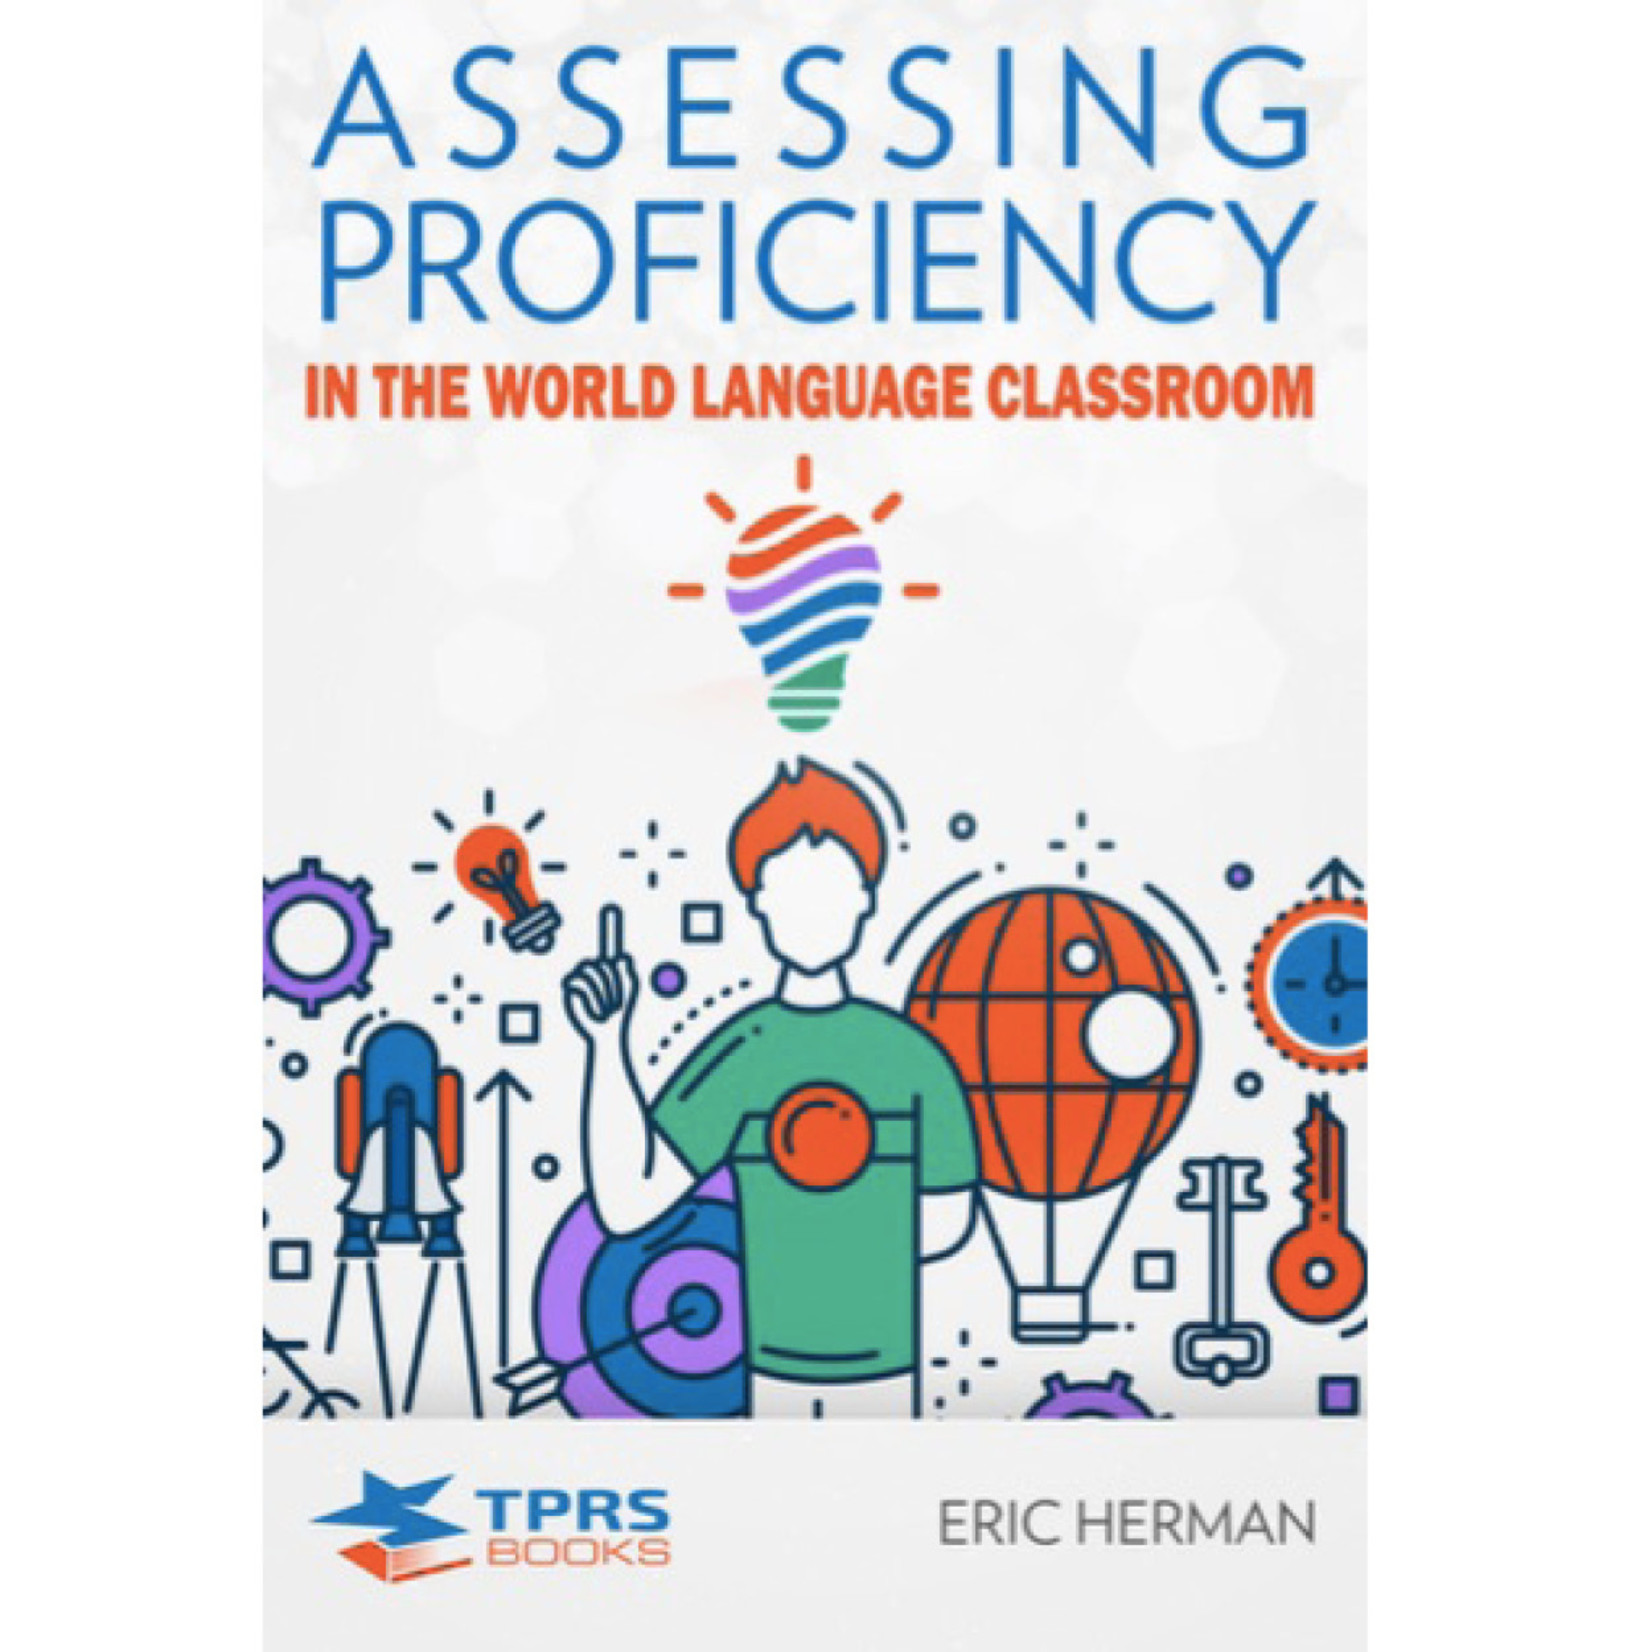 TPRS Books Assessing Proficiency in the world language classroom